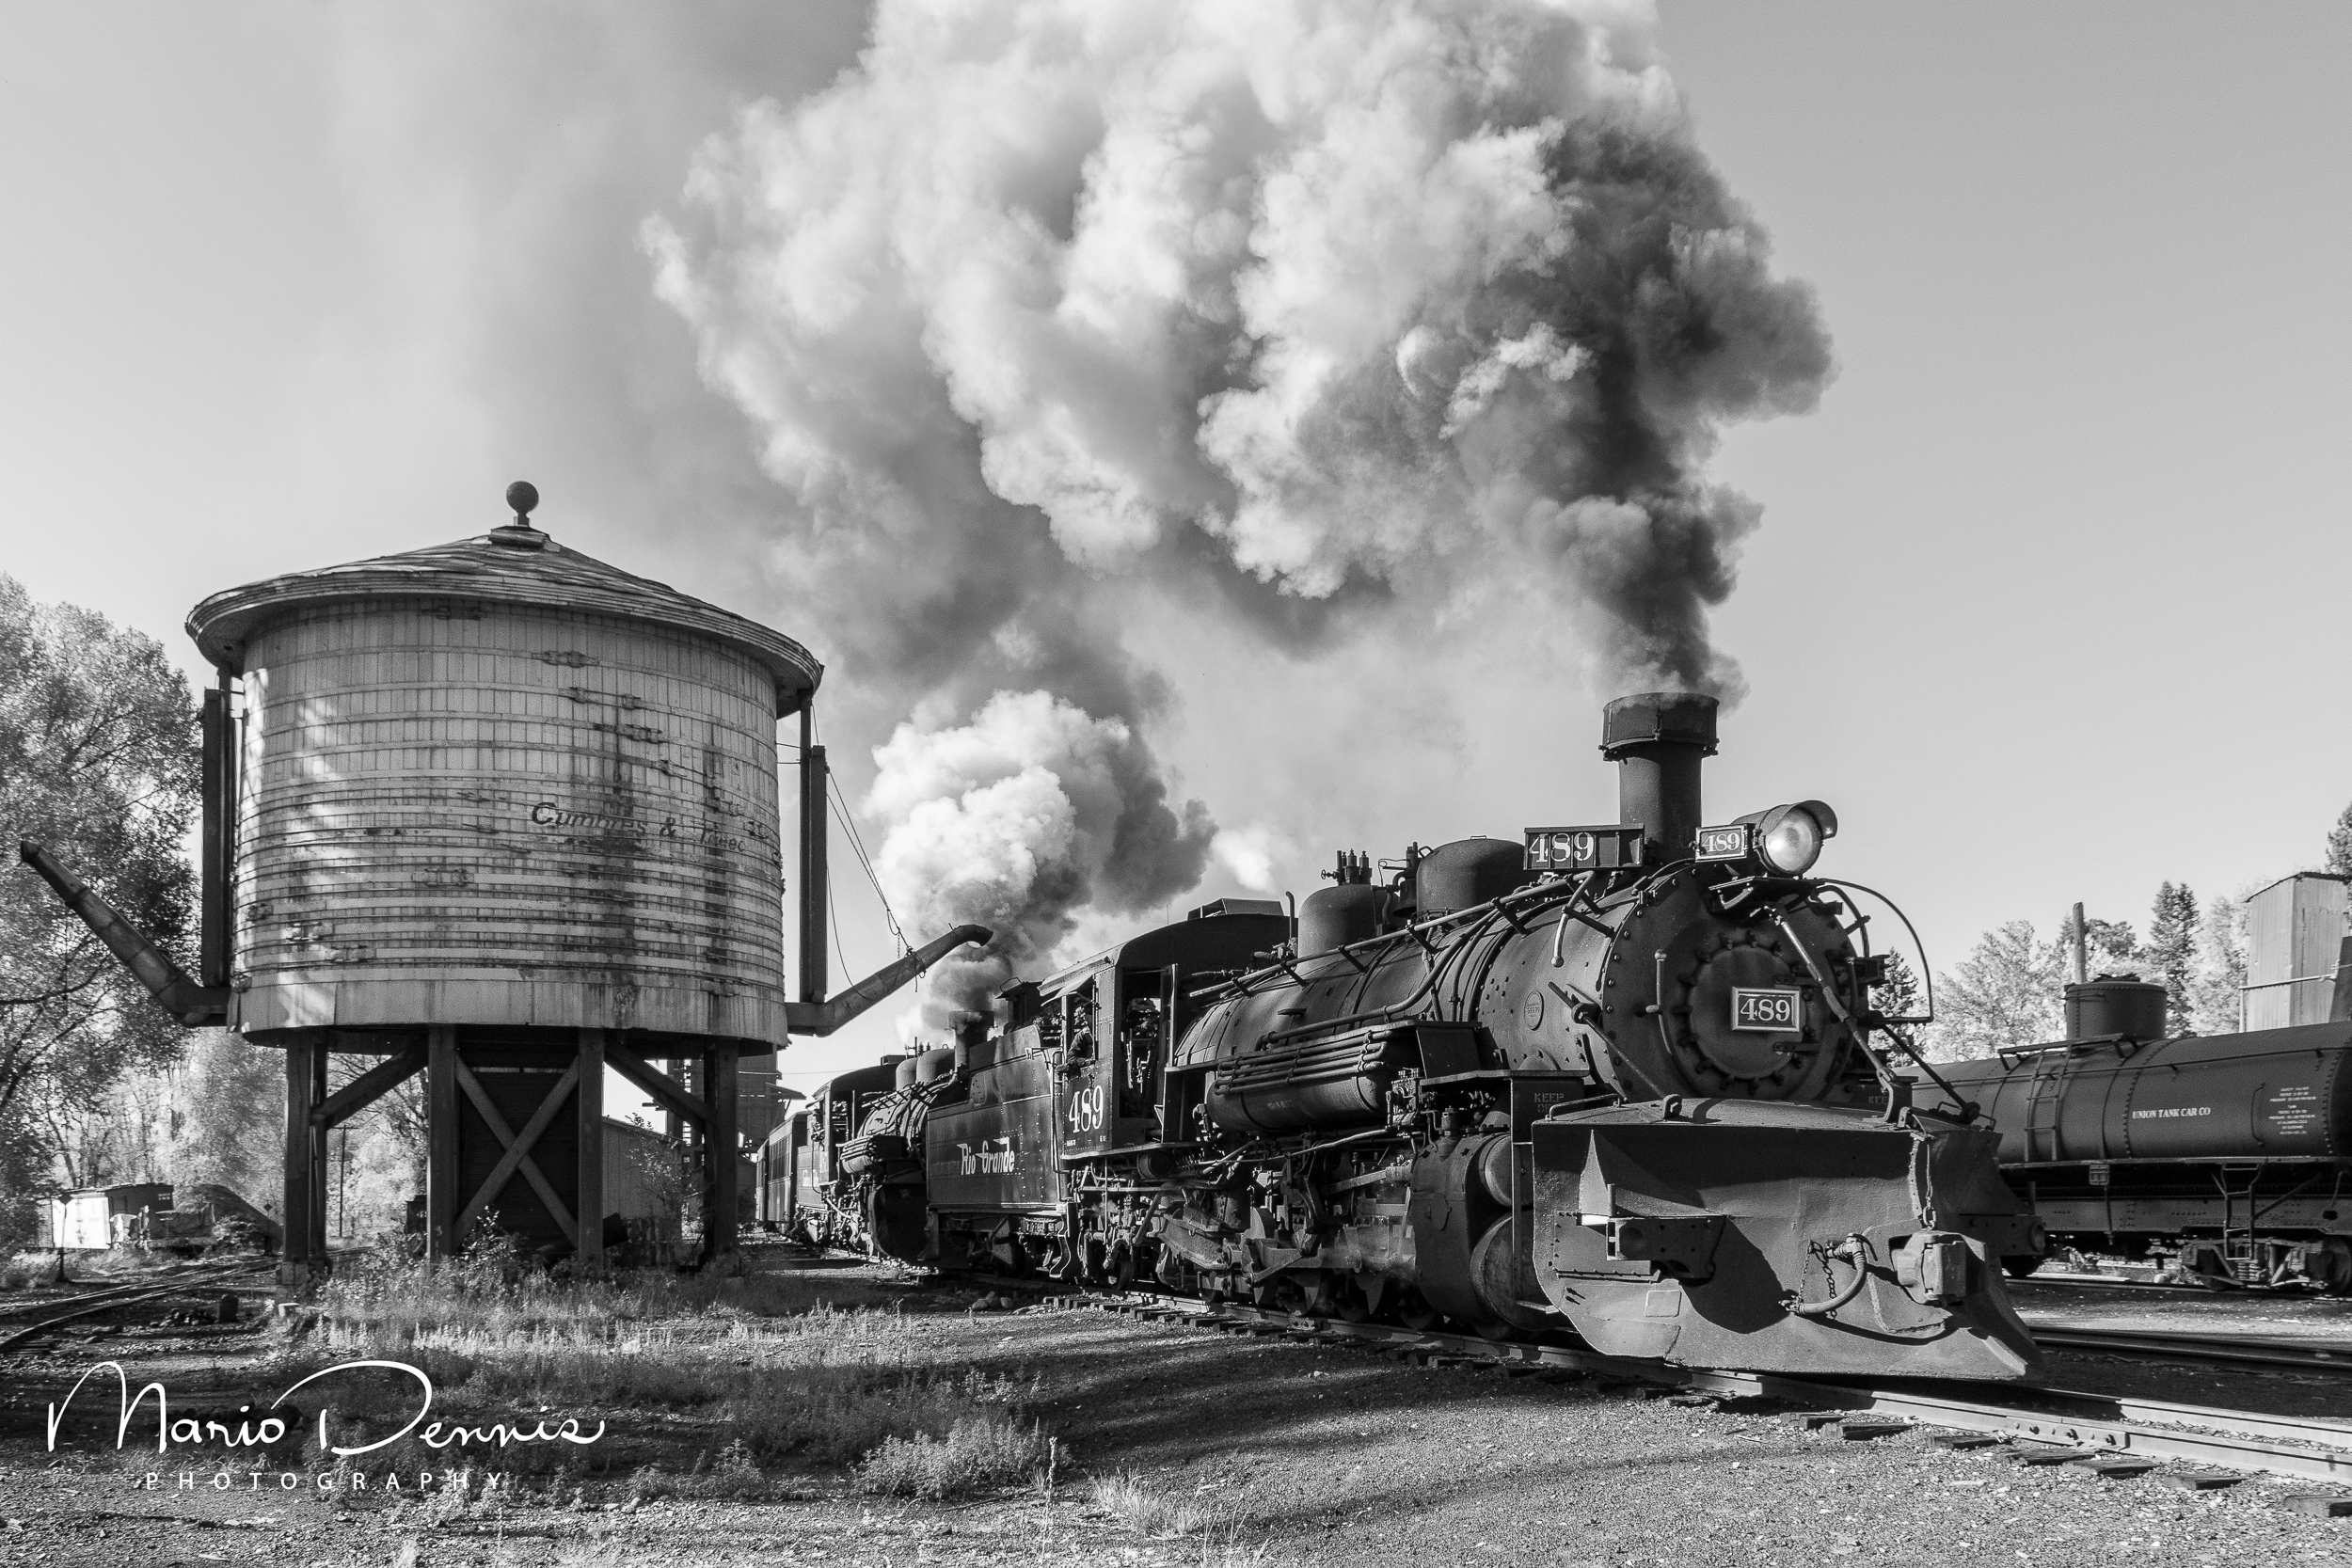 Pulling out of the Chama yard.